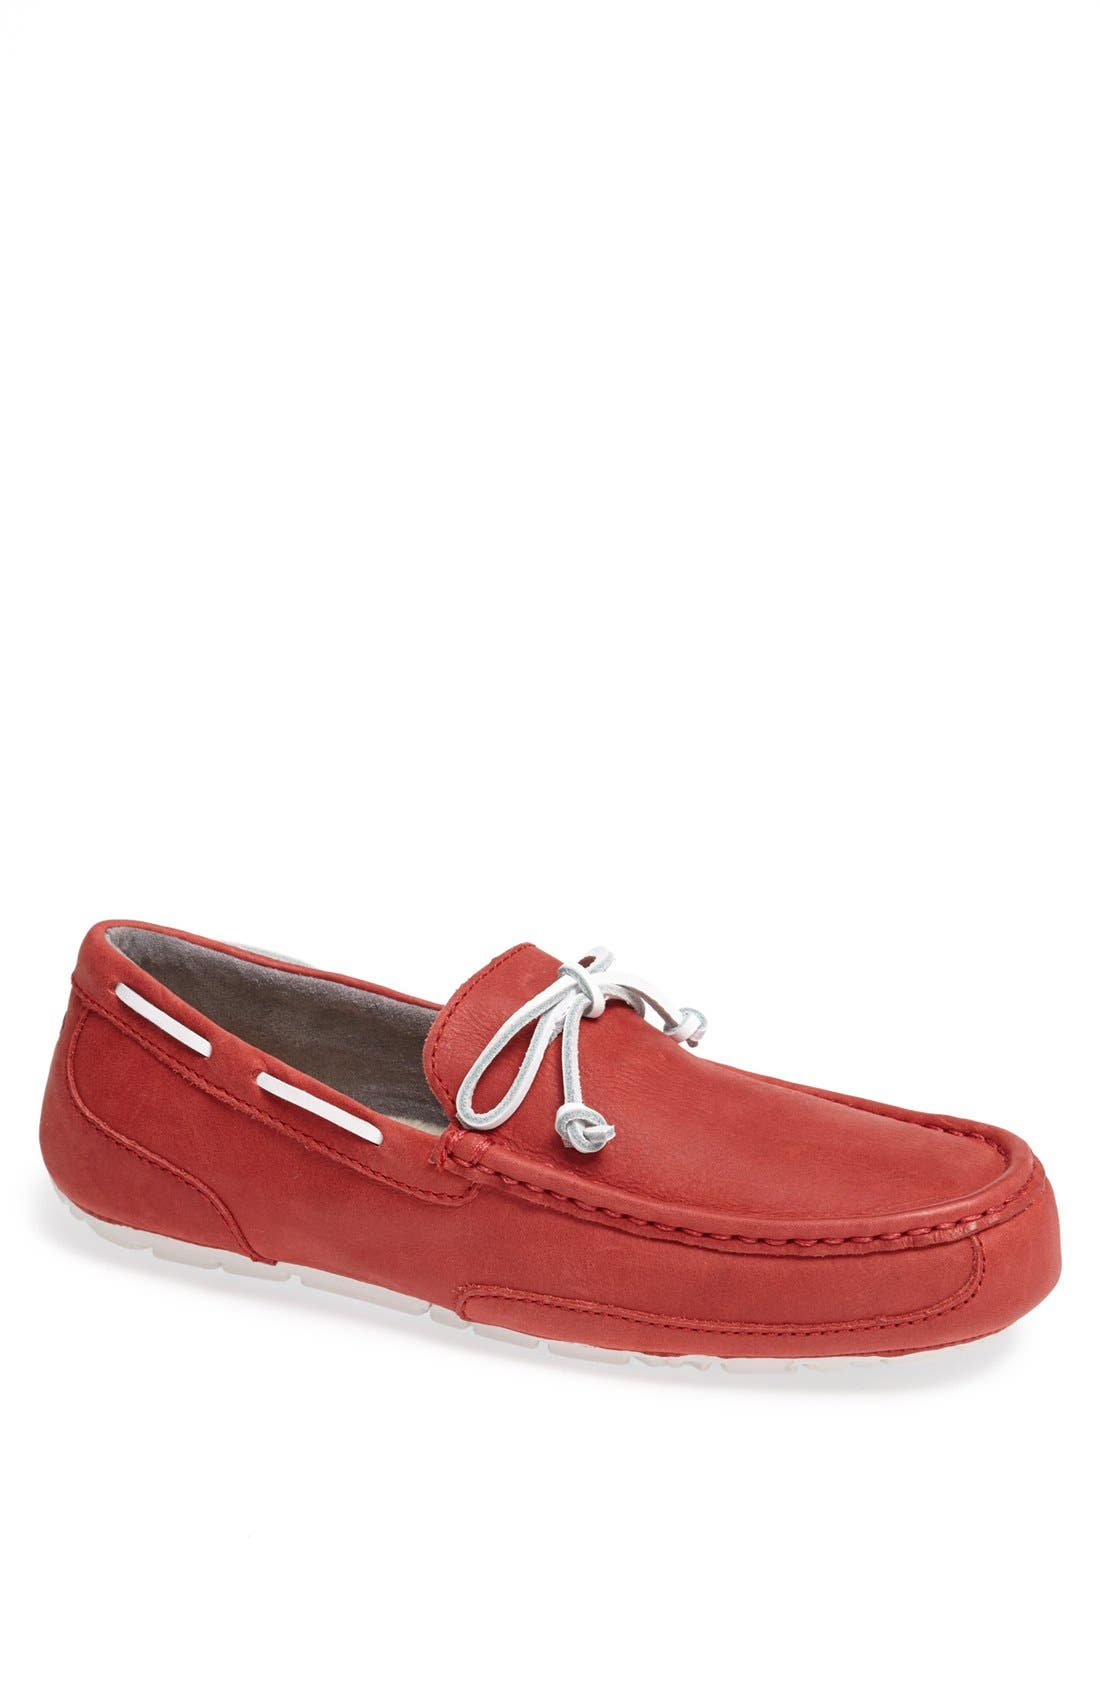 'Chester' Driving Loafer,                             Main thumbnail 9, color,